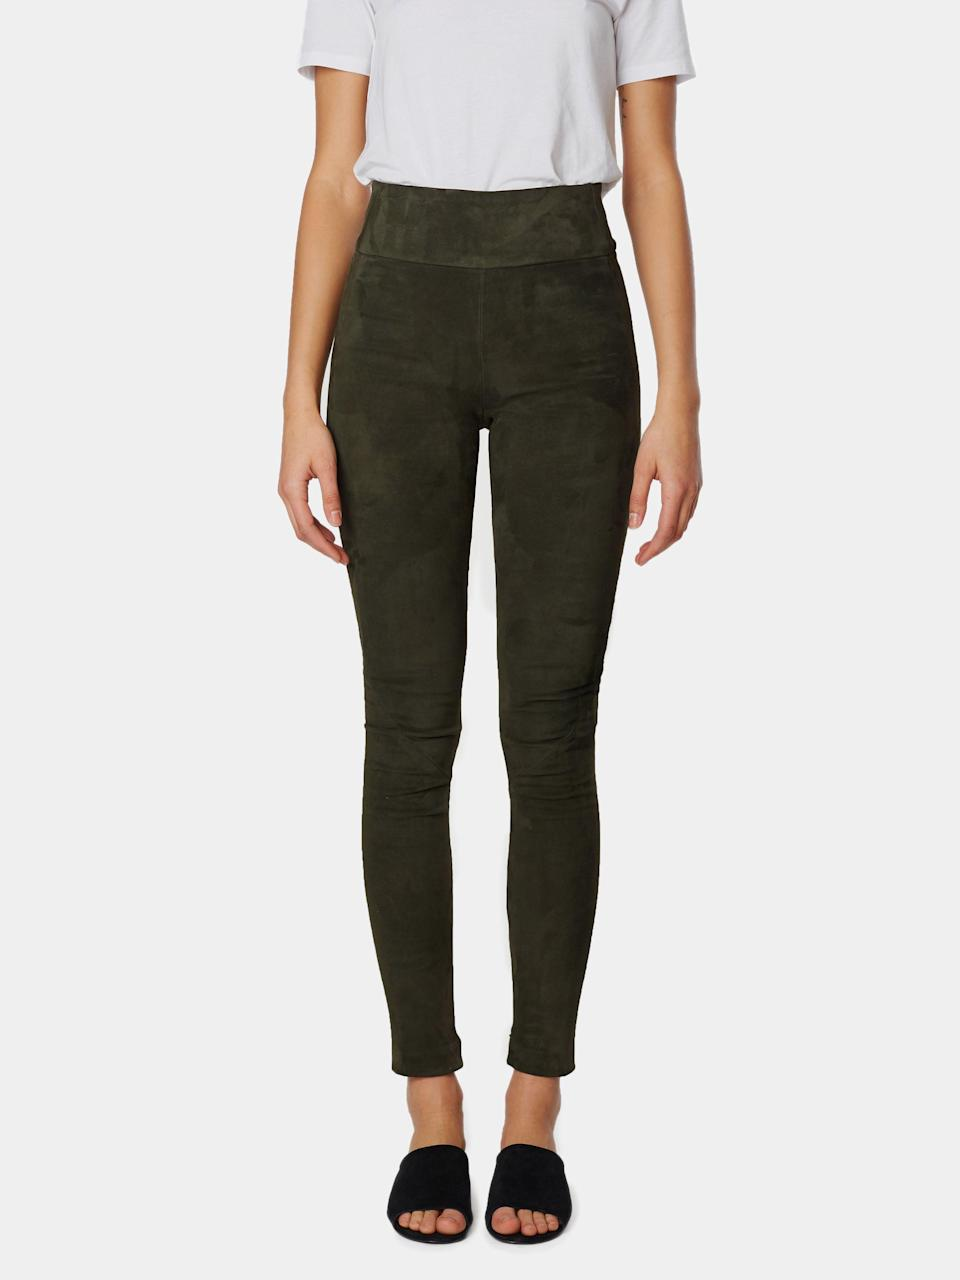 """<p><strong>Offtrack </strong></p><p>offtrack.co</p><p><a href=""""https://www.offtrack.co/collections/all/products/ot-leggings-forest-green-suede"""" rel=""""nofollow noopener"""" target=""""_blank"""" data-ylk=""""slk:Shop Now"""" class=""""link rapid-noclick-resp"""">Shop Now</a></p><p>Every woman needs a wardrobe of reliable staples that she can mix and match for casual to fancy looks in a snap. Take the guesswork out by giving her the gift of a quality pair of suede leggings from Offtrack that are not just obscenely comfortable, but also uber flattering, versatile, luxurious and sustainable to boot. She'll want a pair in every color, no doubt. </p>"""